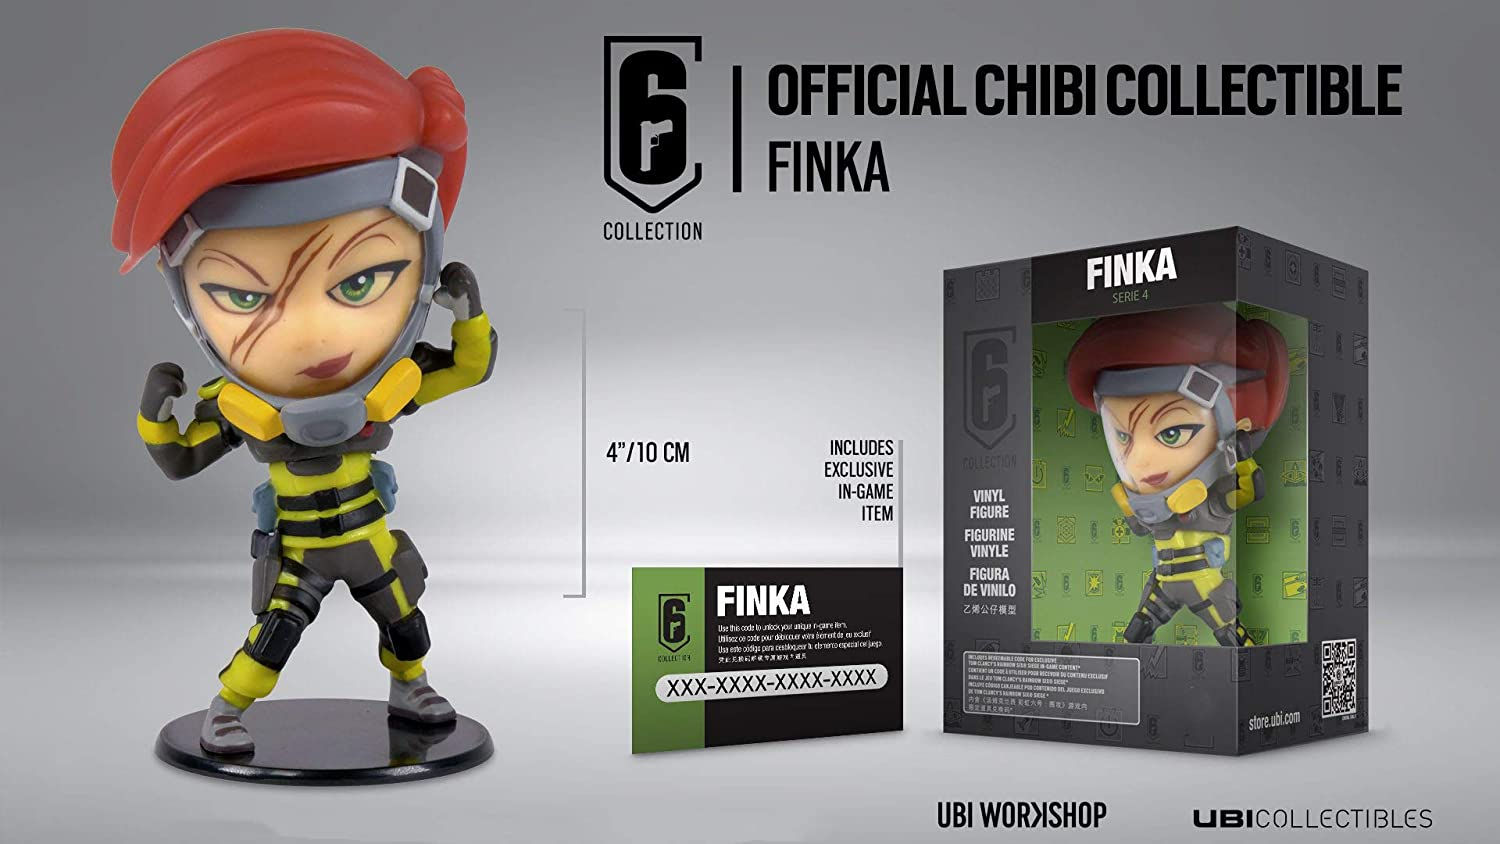 Rainbow Six Siege Collection Figurine Series 4 Finka Chibi